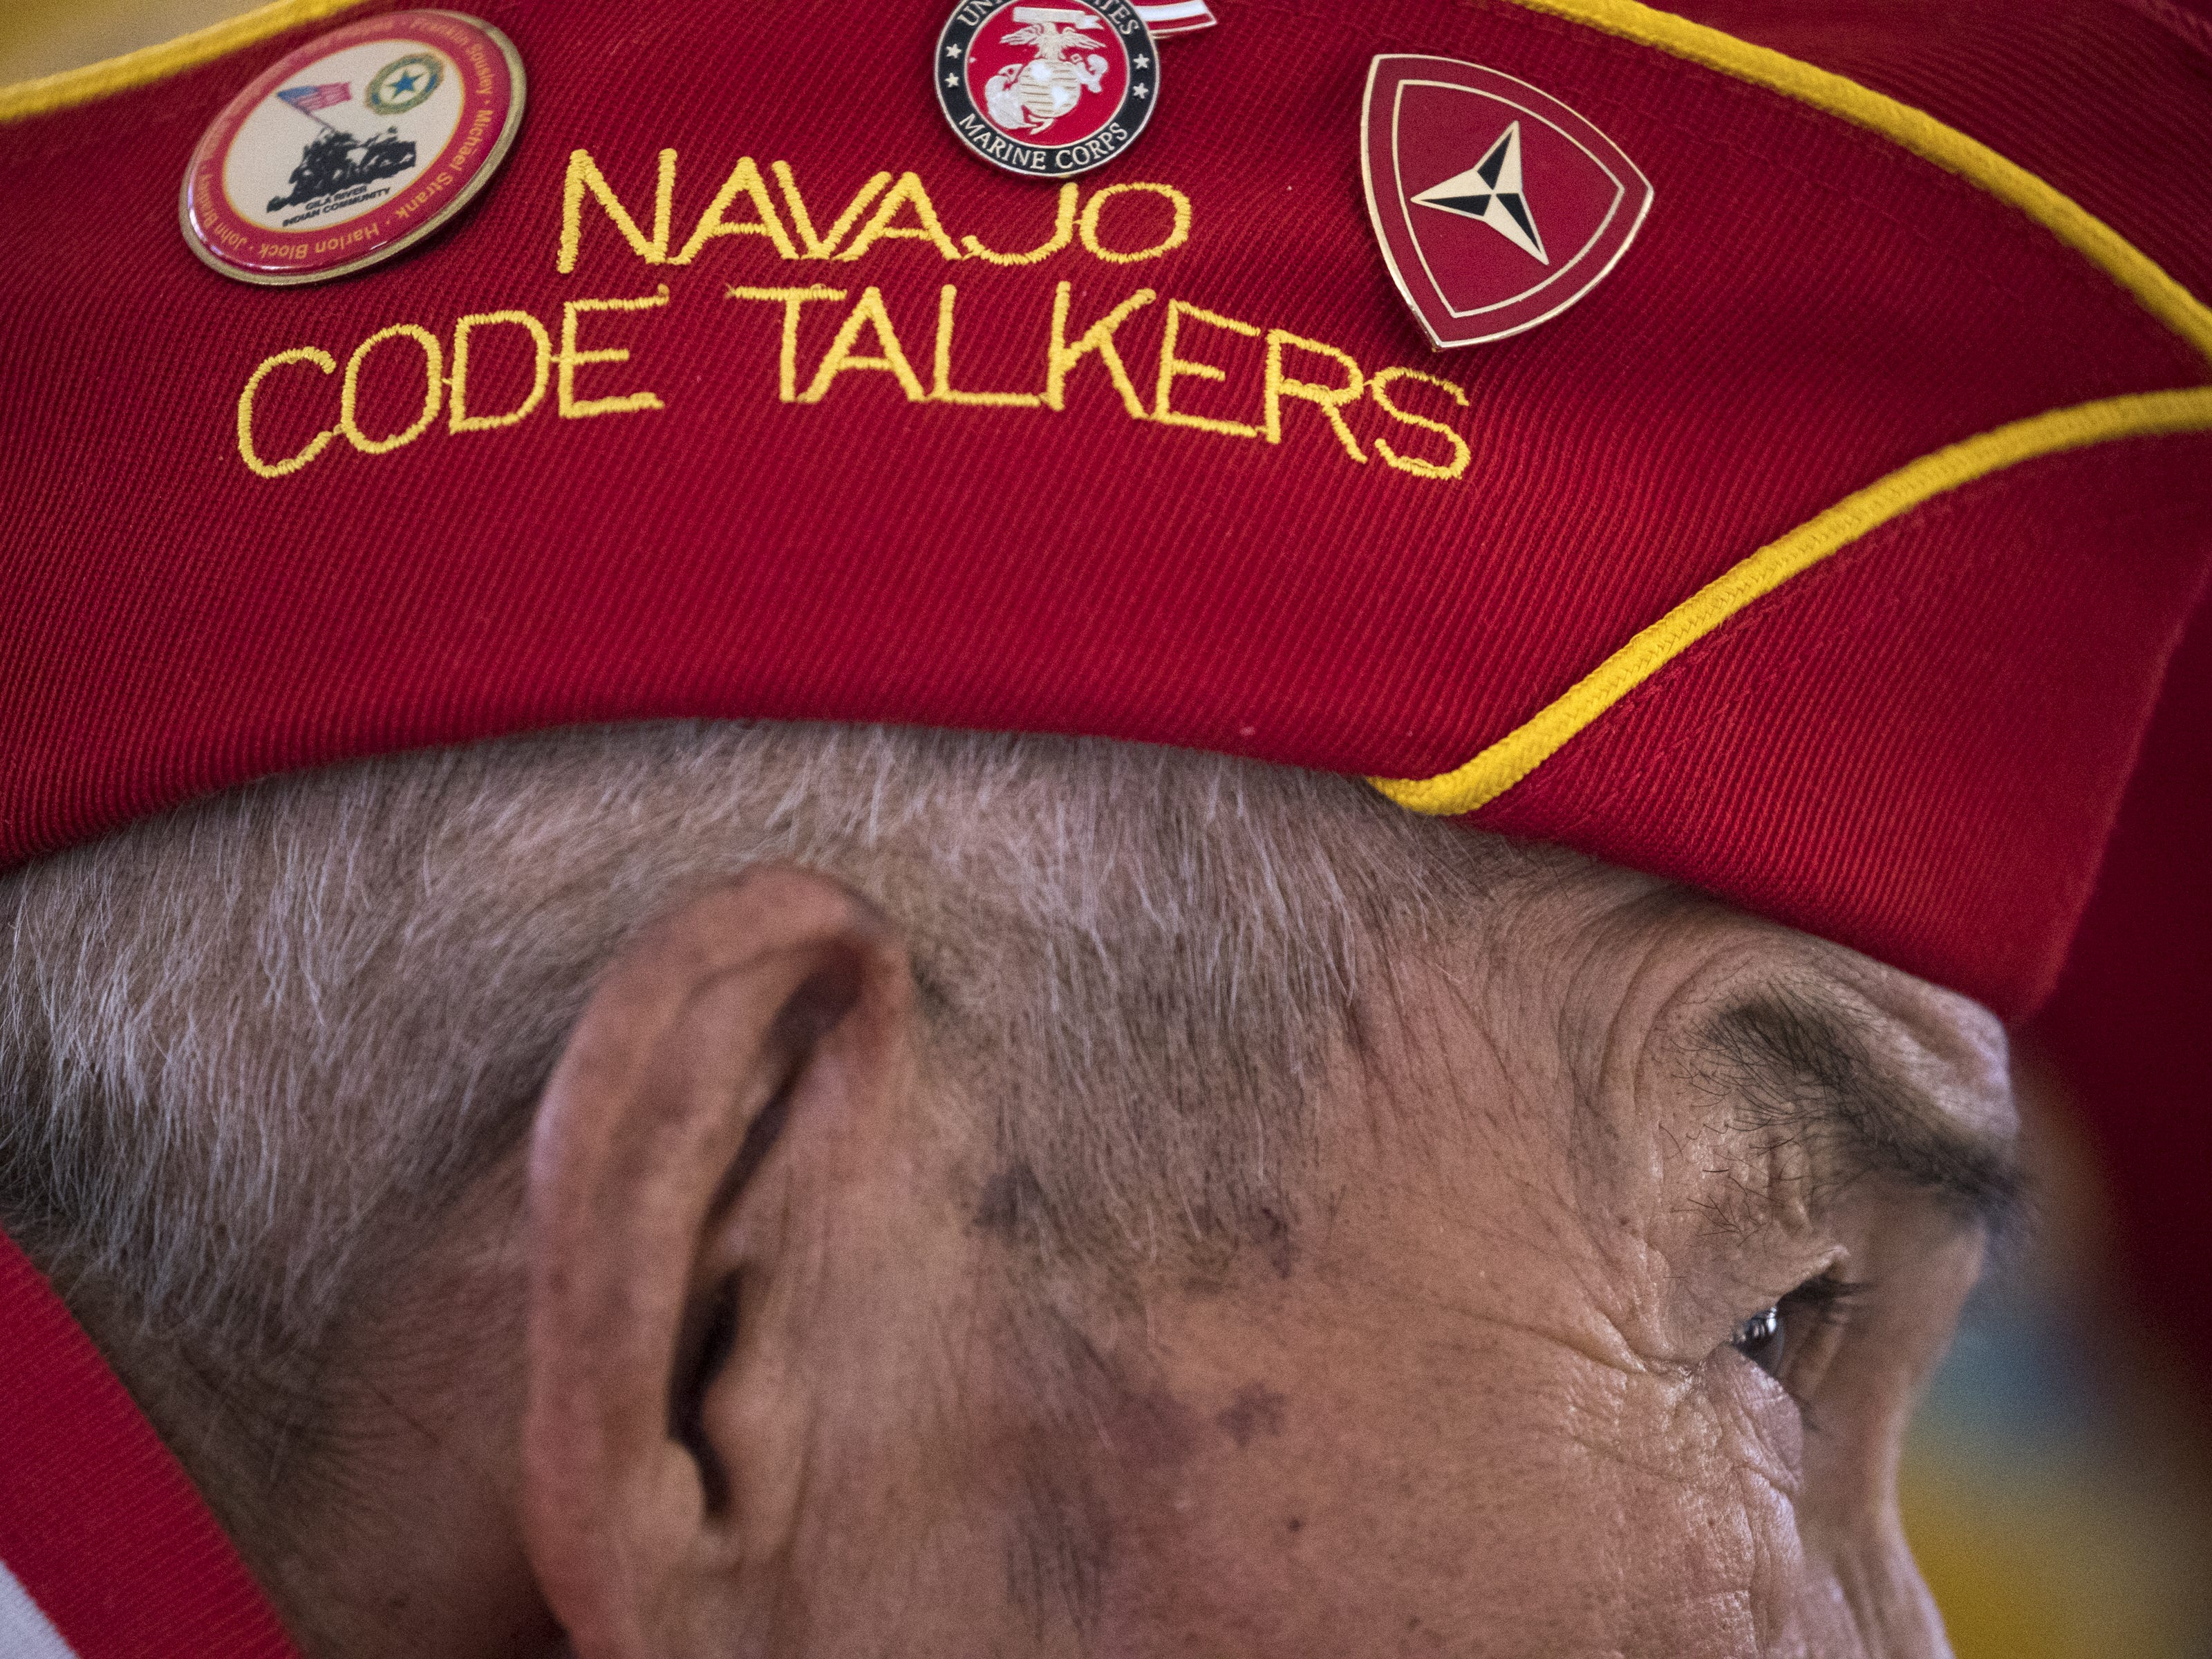 Navajo Code Talker Alfred K. Newman listens to the Marine Forces Reserve Band during the Navajo Nation Code Talkers Day parade on Aug. 14, 2018, at the Navajo Nation Fairgrounds in Window Rock.